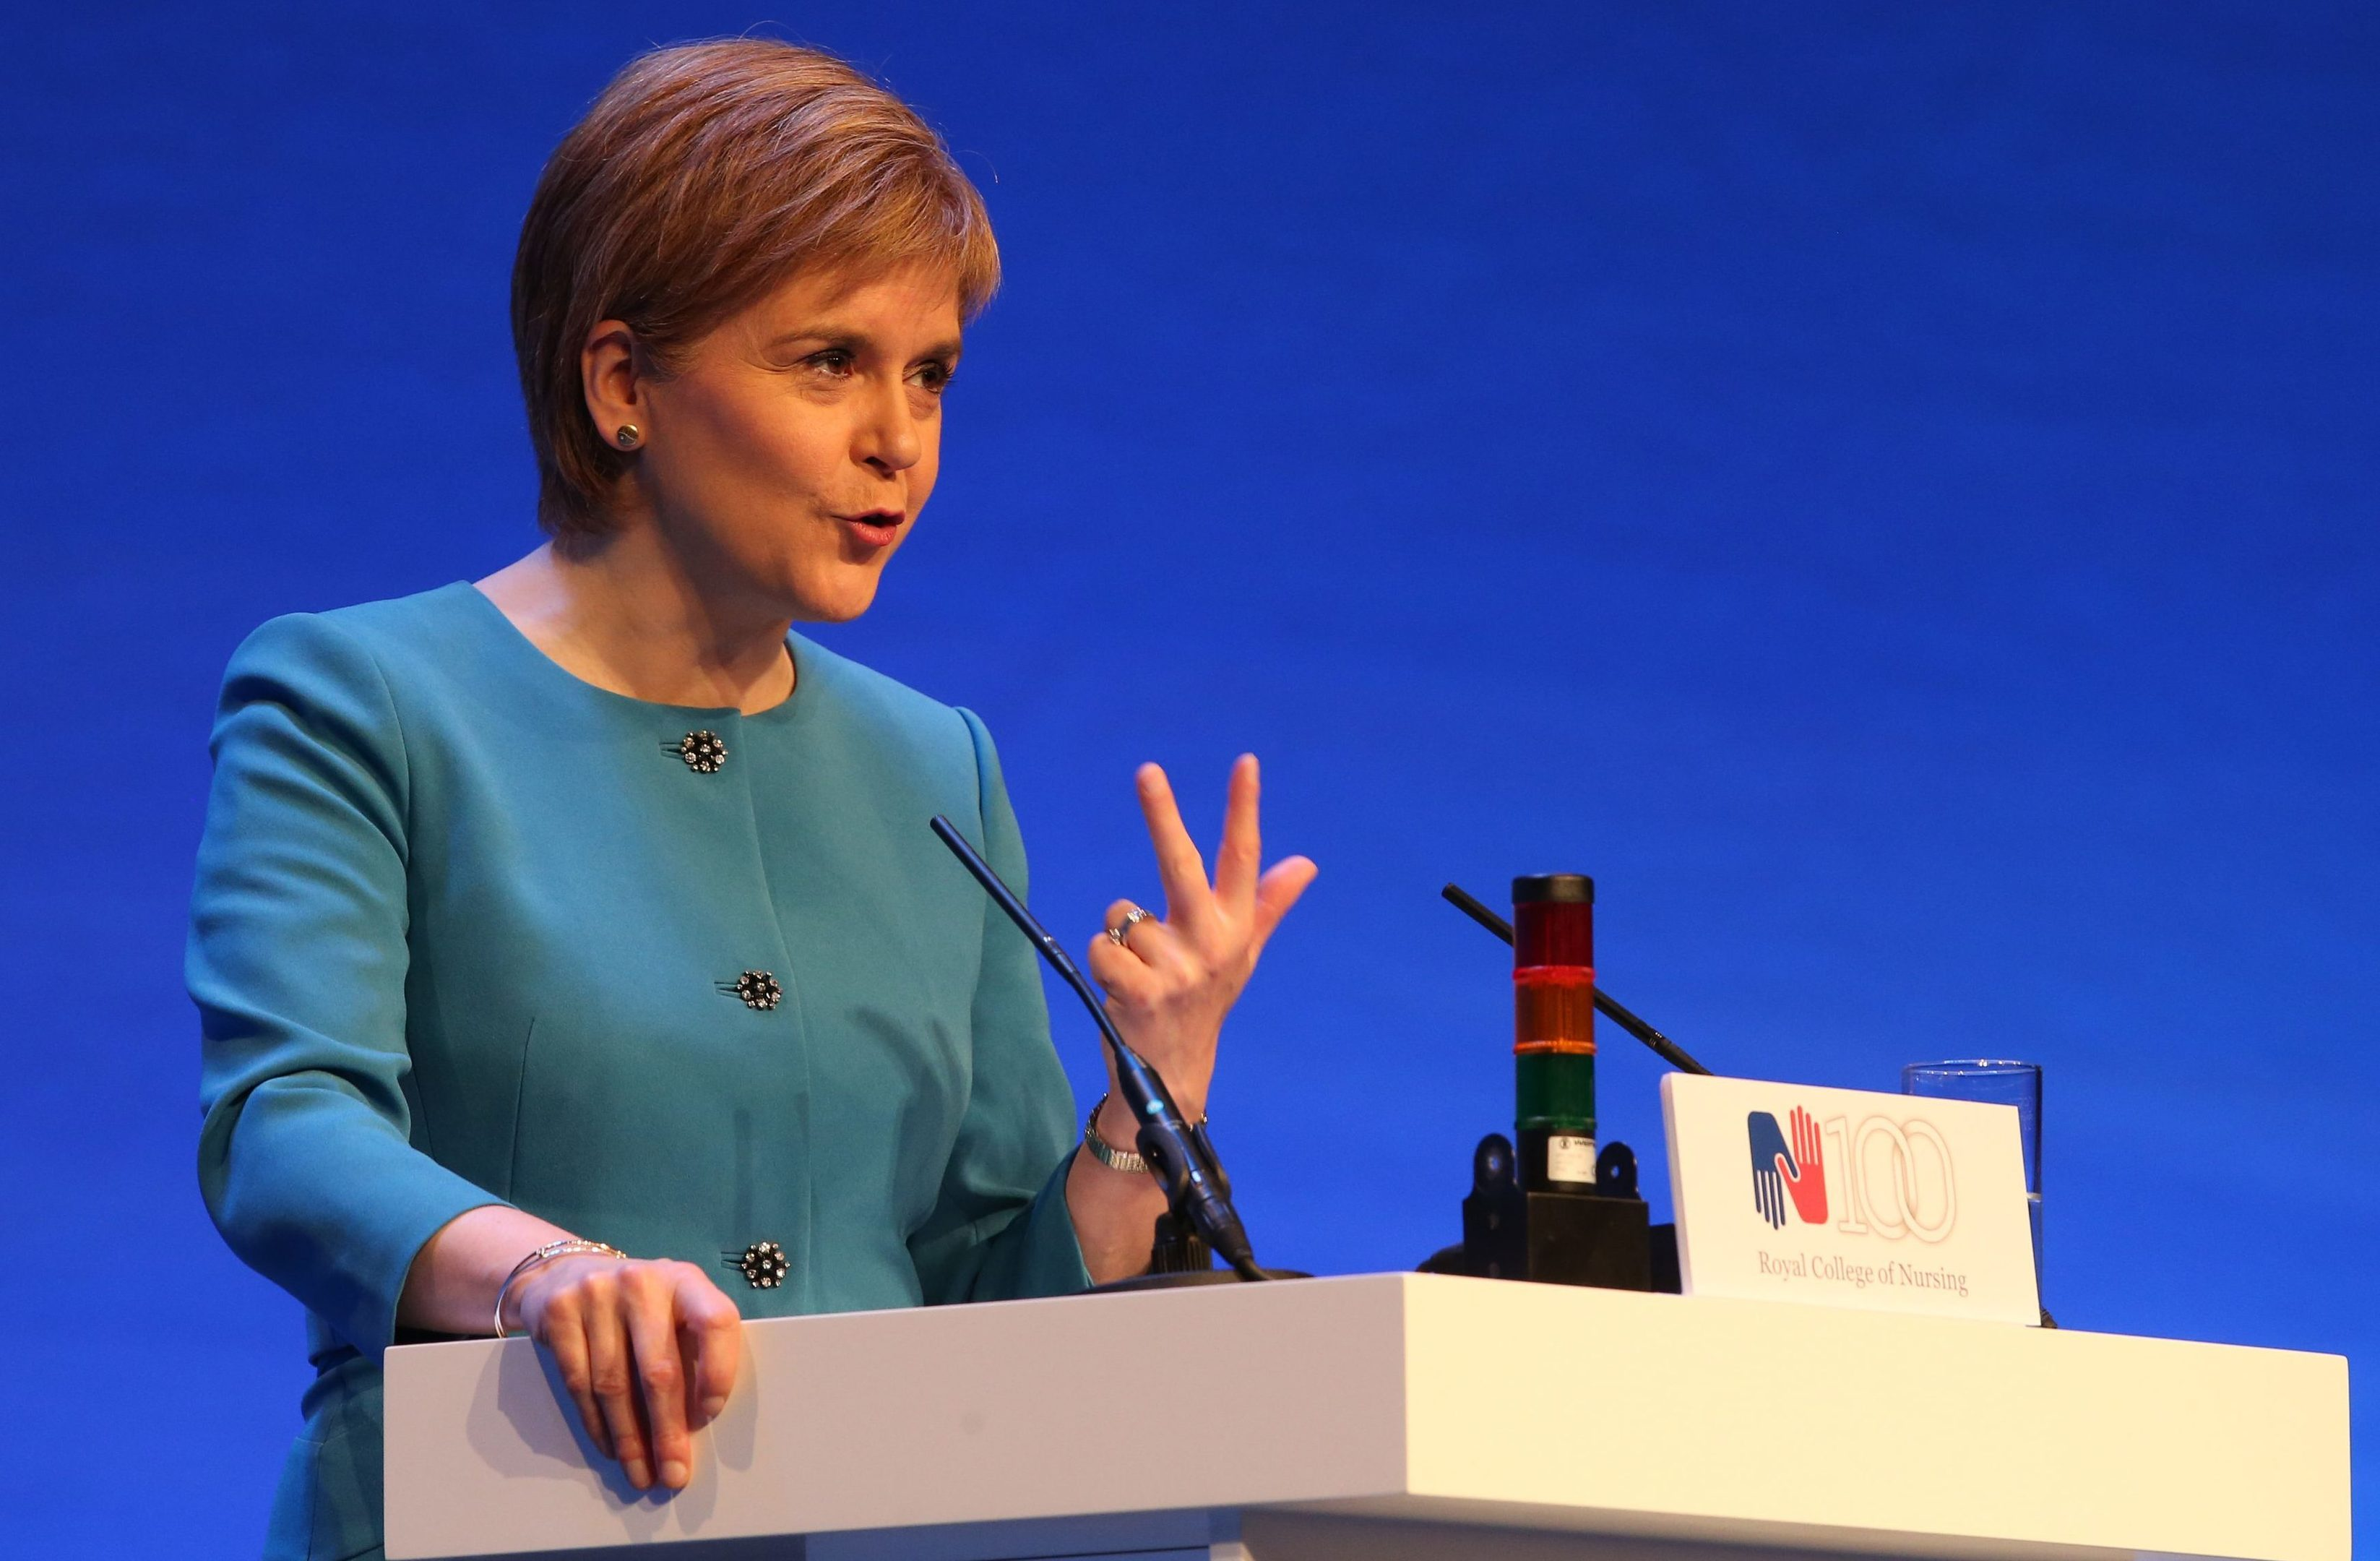 First Minister Nicola Sturgeon guaranteed to retain free tuition and bursaries for nursing and midwifery students in Scotland.